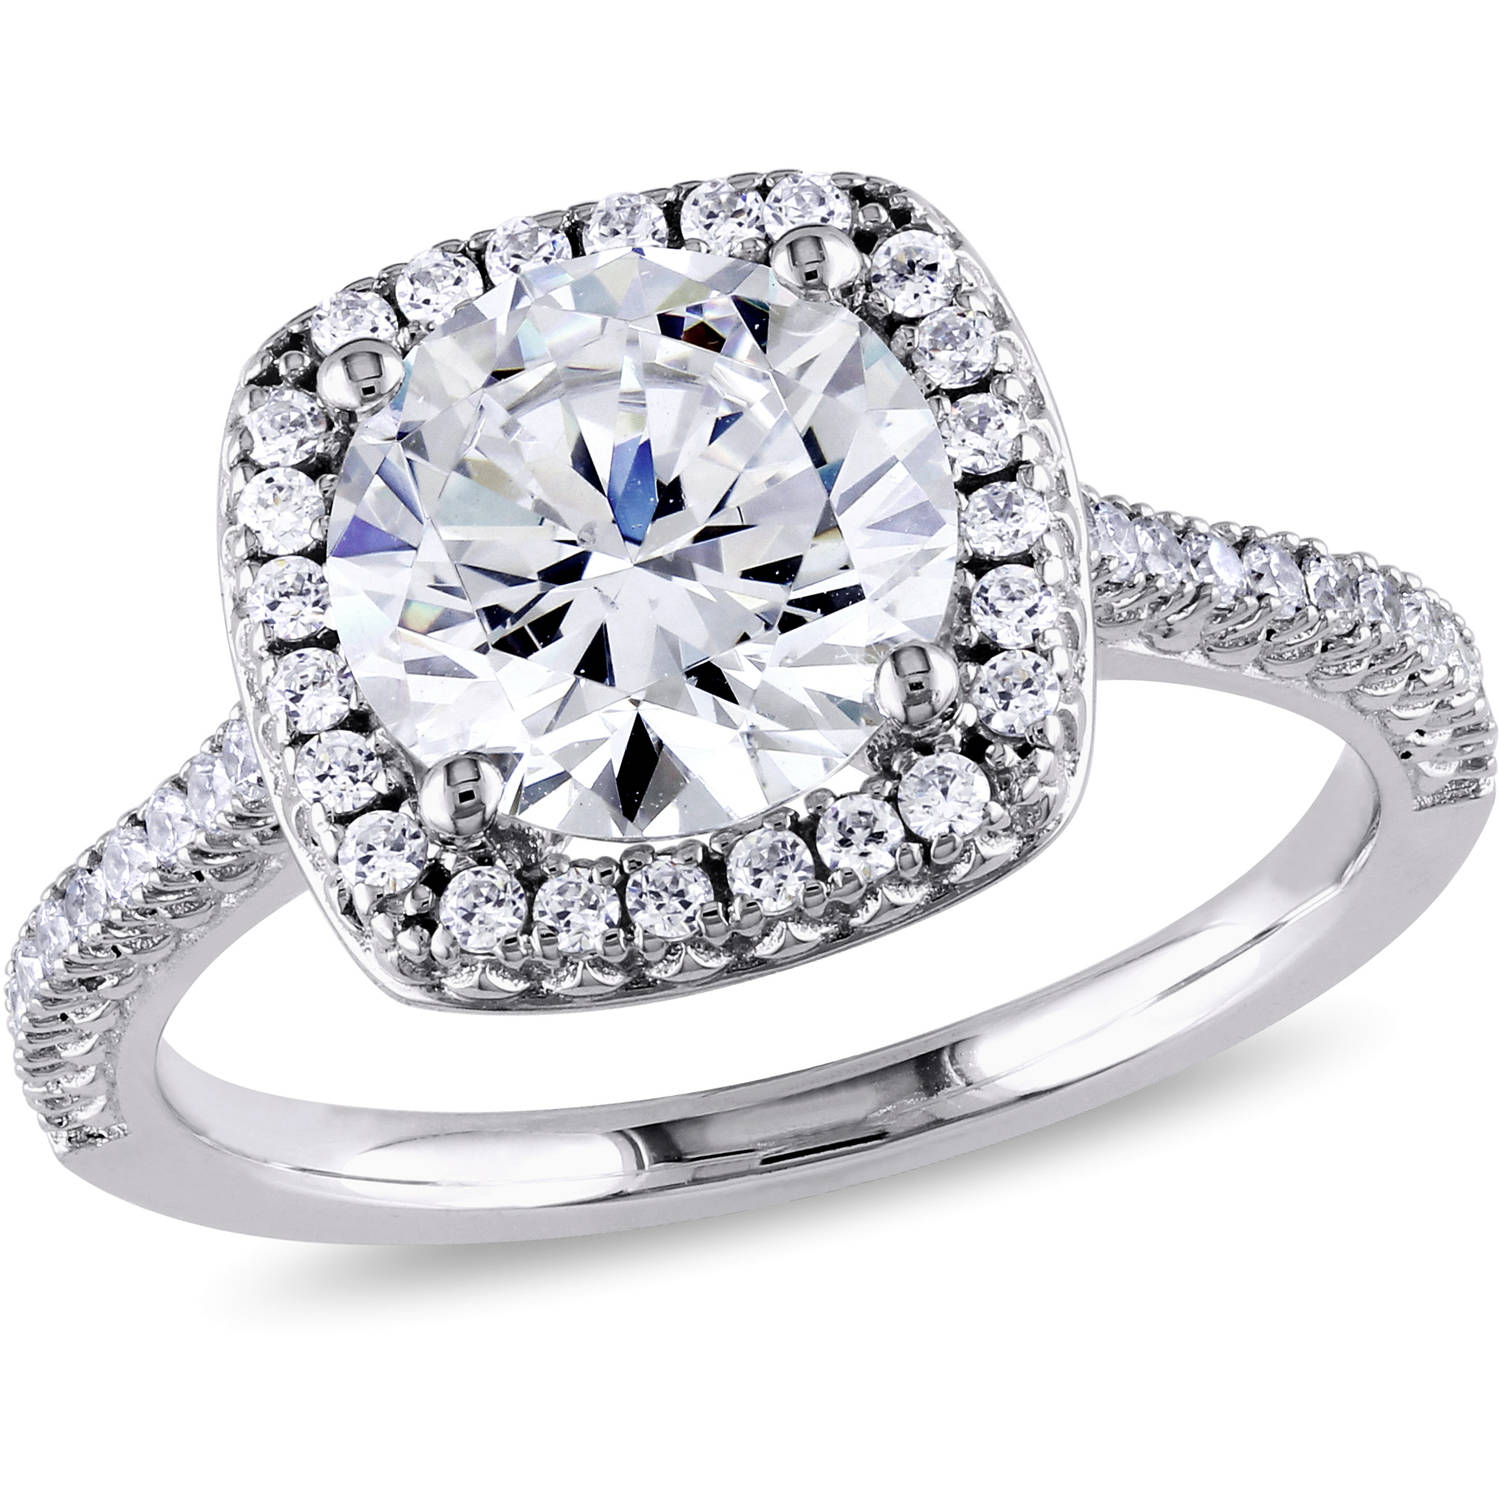 ring rings diamond cheap low best value nz the wedding luxury choosing vintage cost